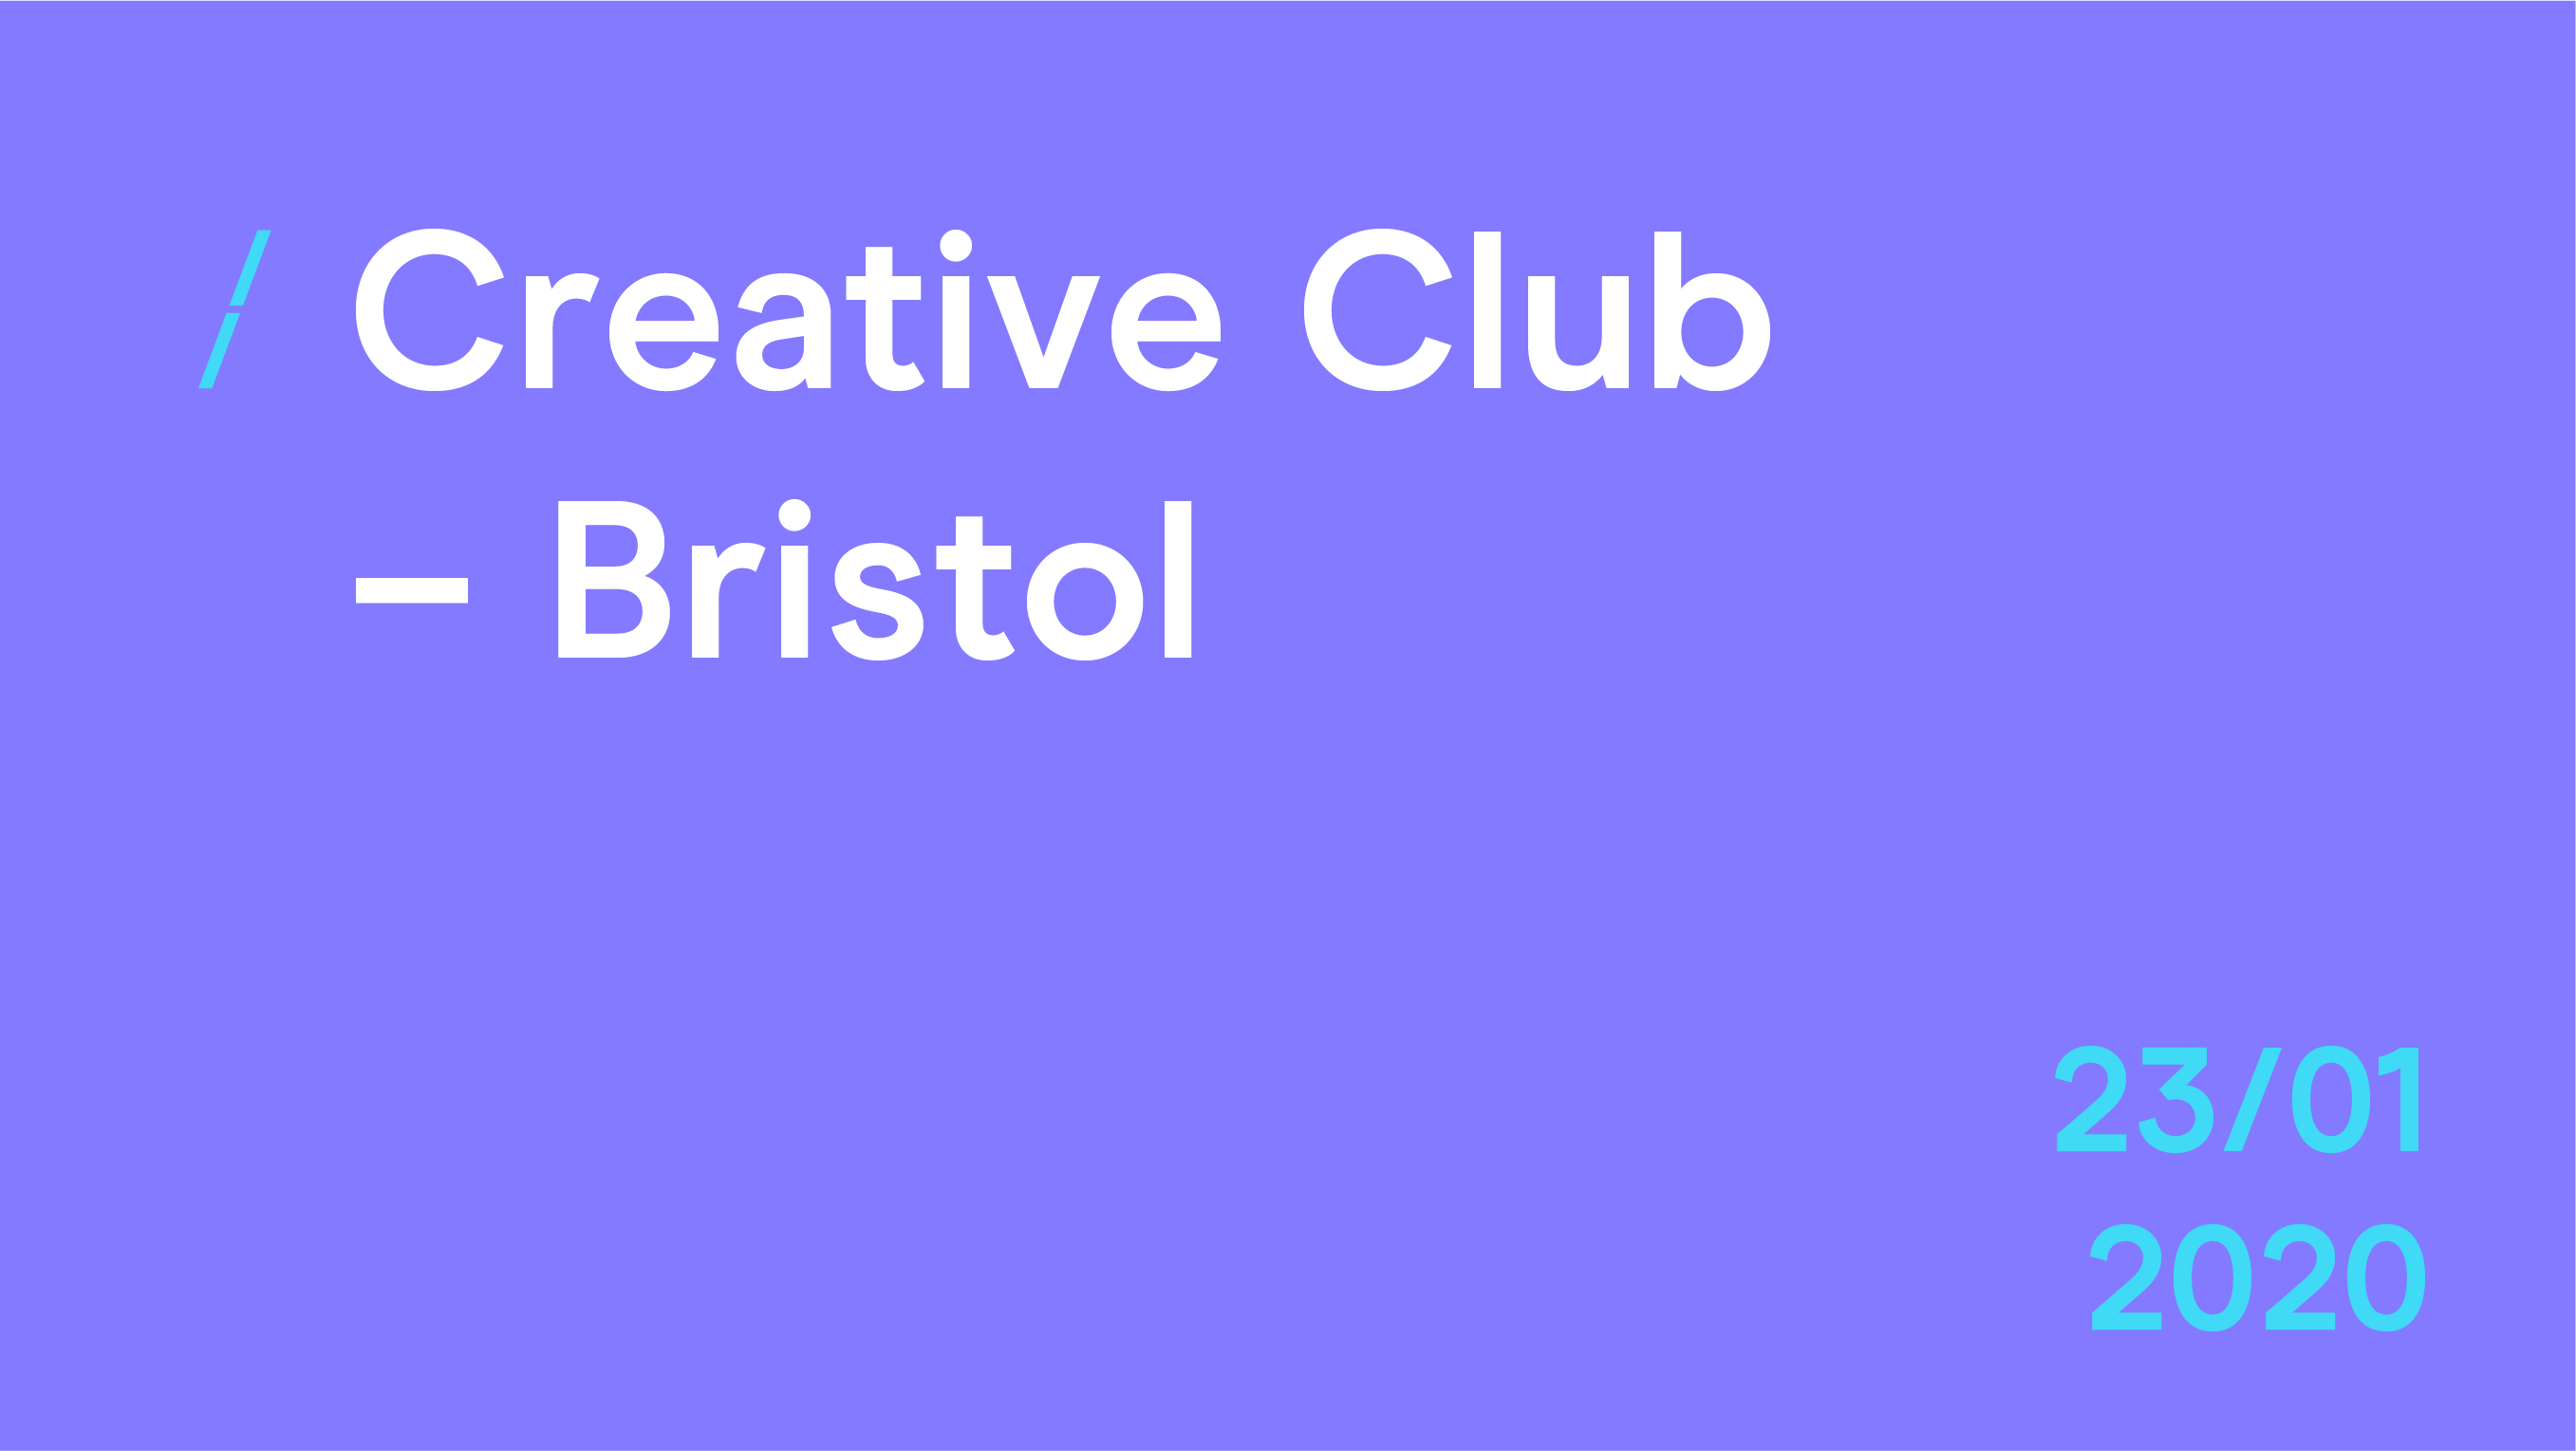 Creative Club Bristol January 2020.png